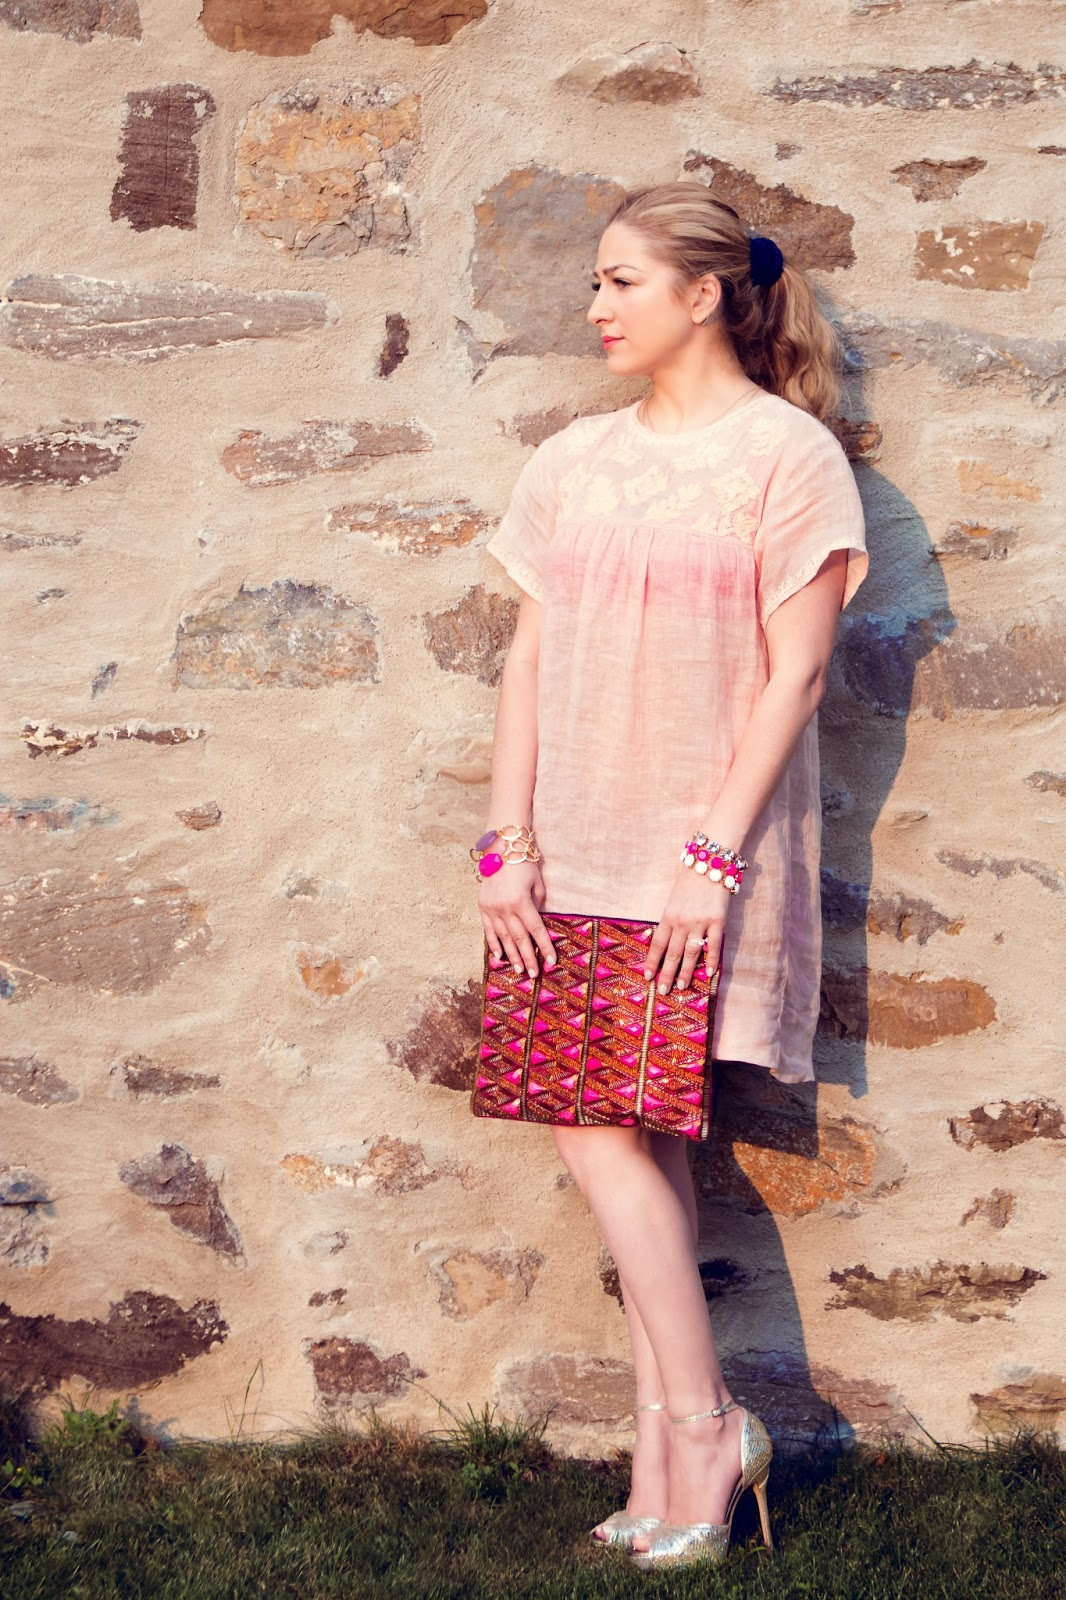 Linen dress, jimm choo, beaded clutch